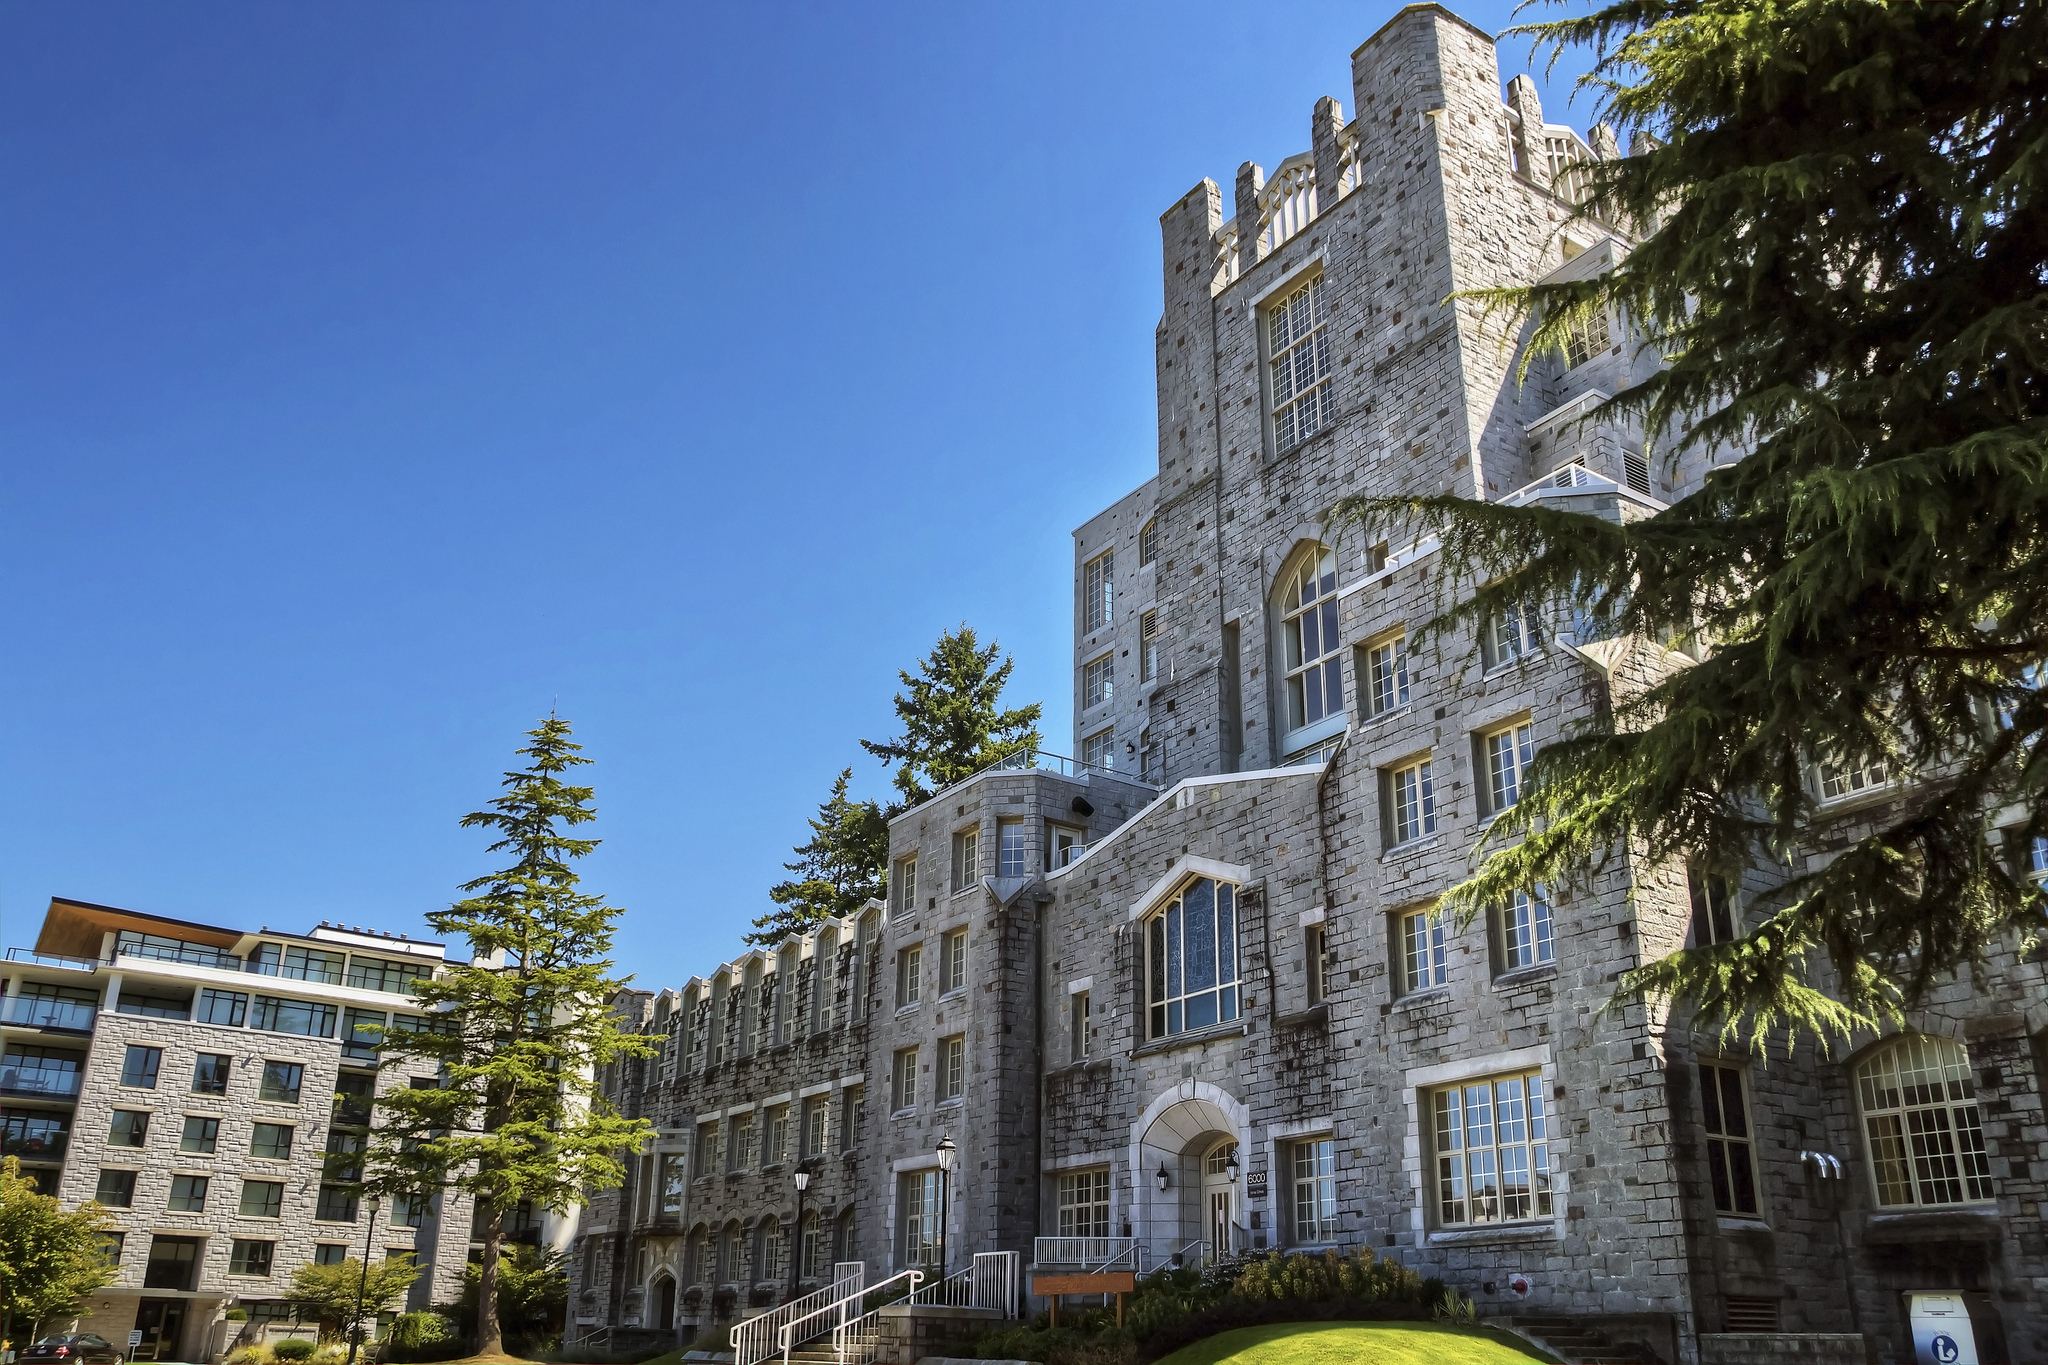 The University of British Columbia in Vancouver was featured 91 times.